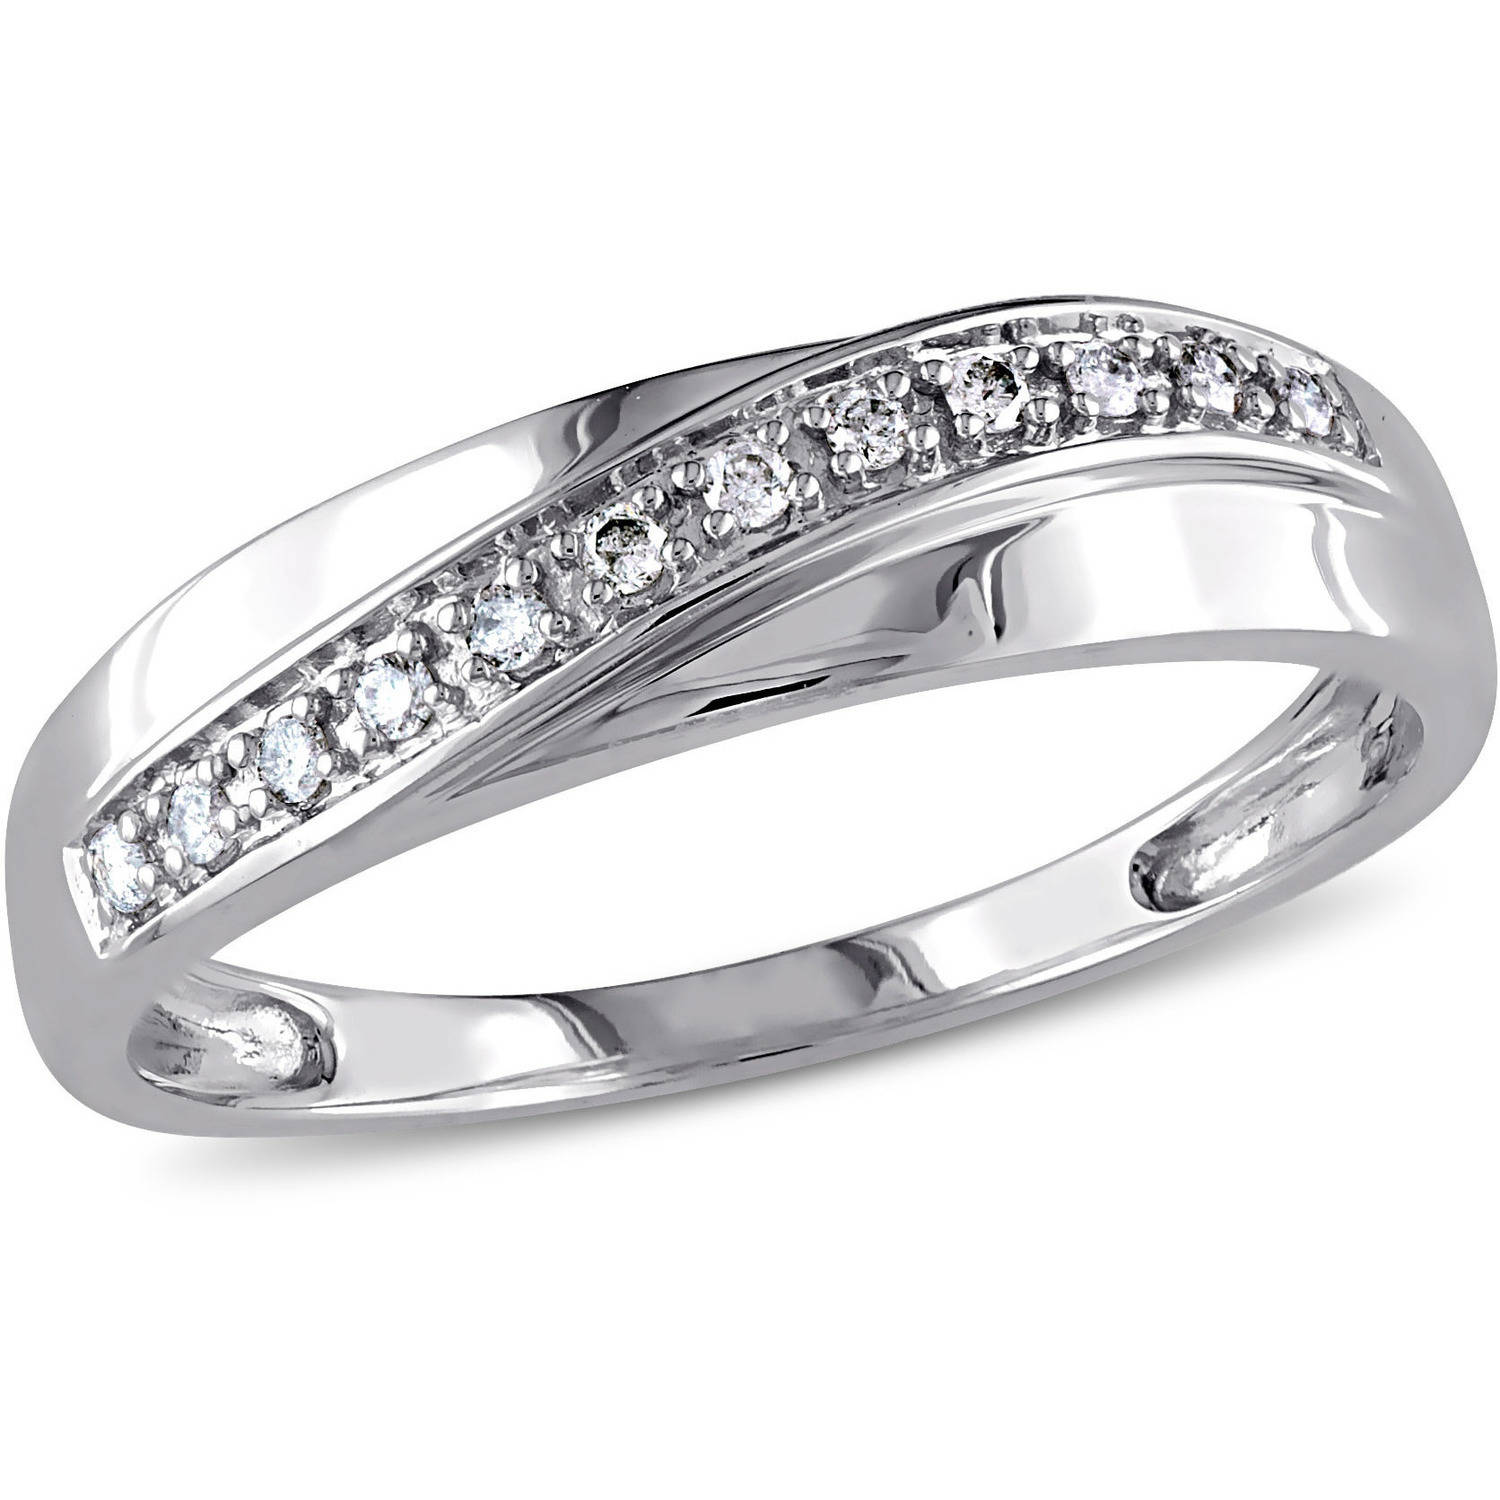 Miabella Men's Diamond-Accent Fashion Ring in 10kt White Gold